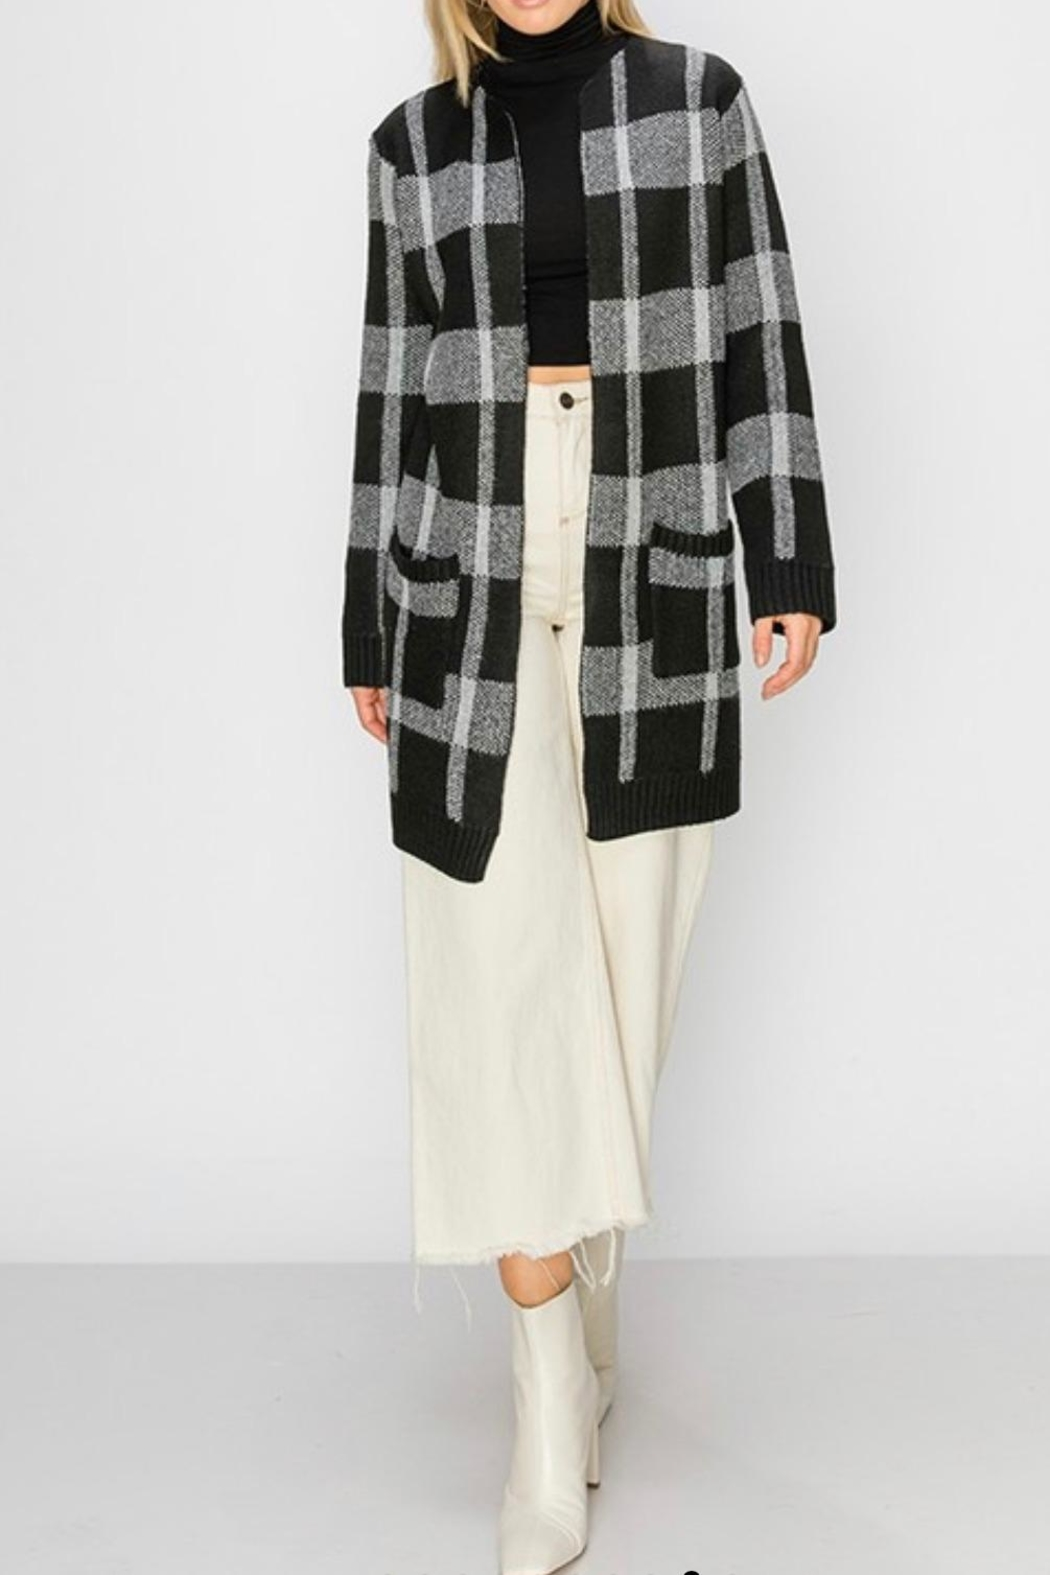 HYFVE Plaid Maxi Open-Sweater - Back Cropped Image